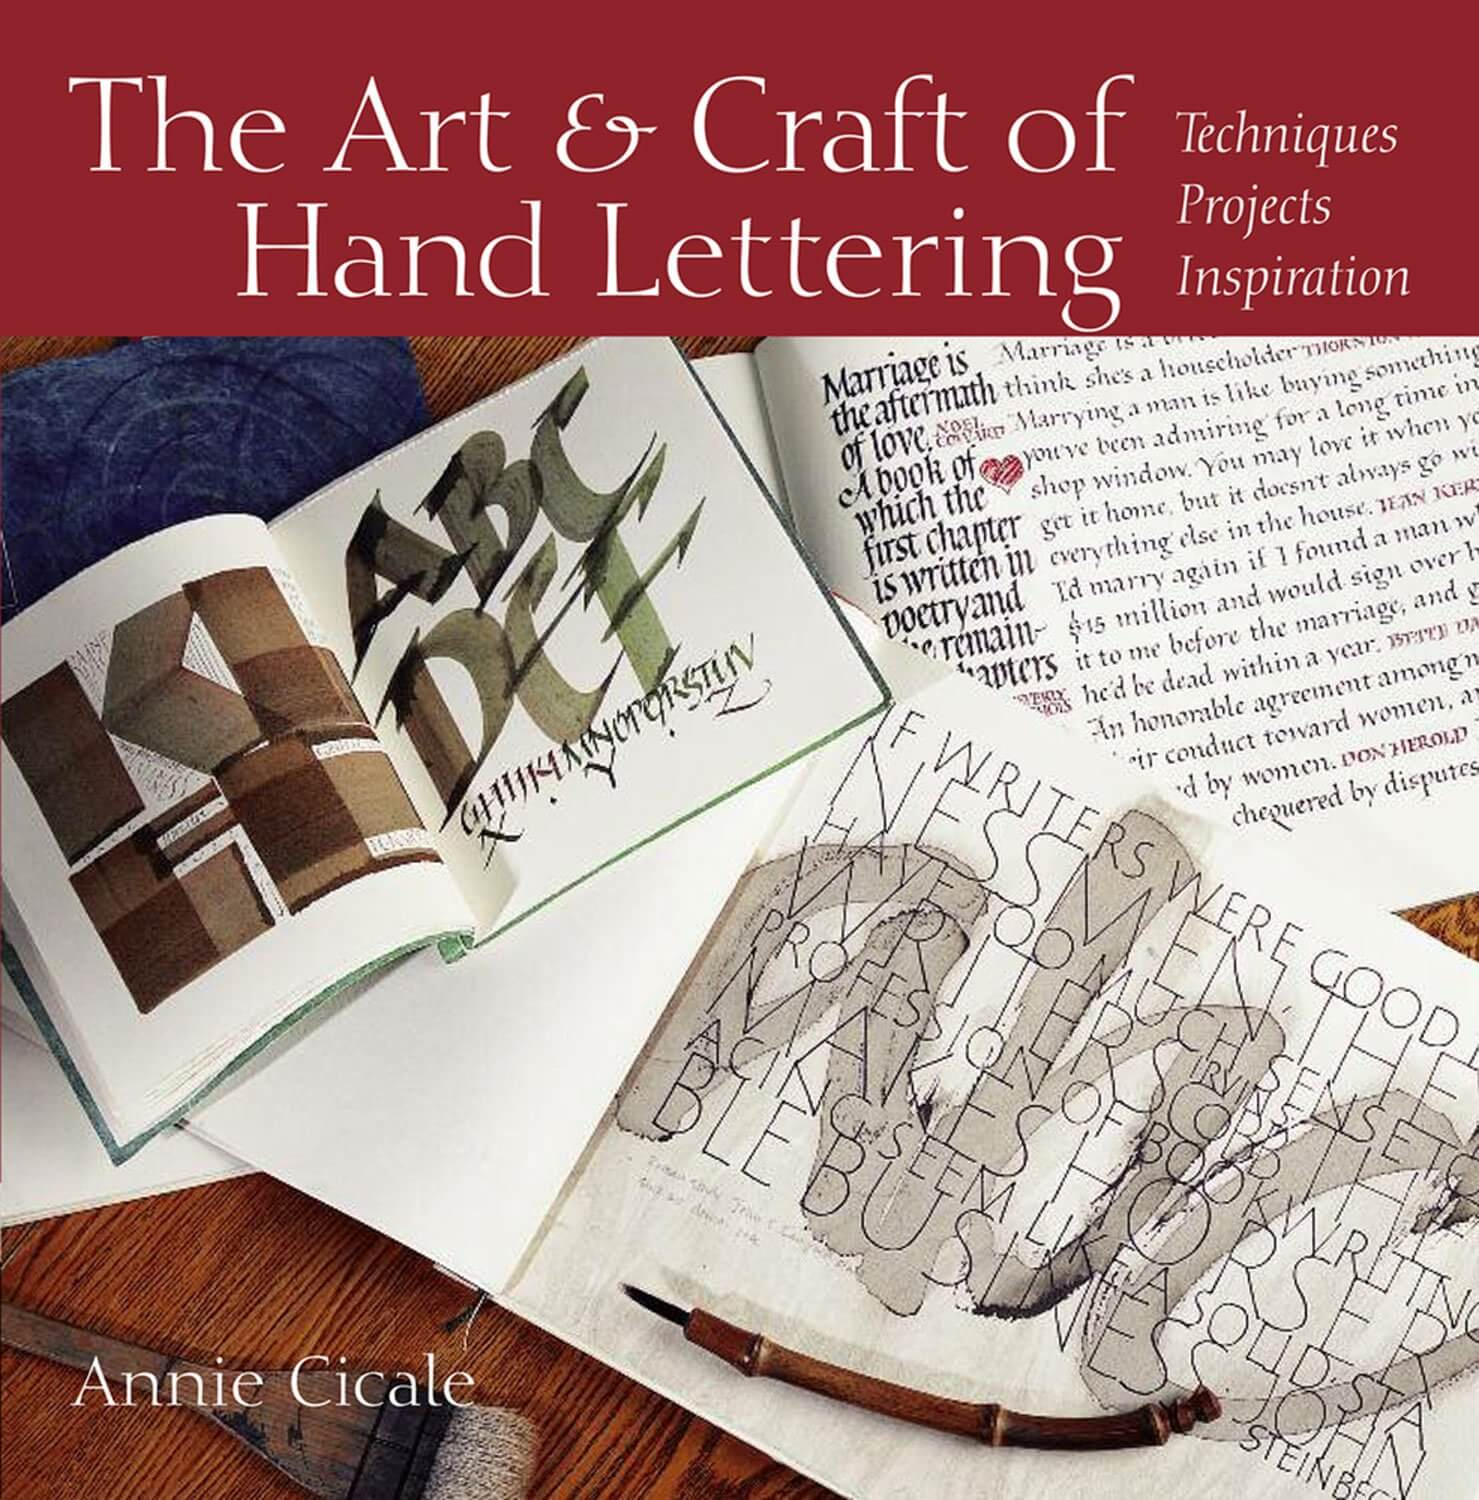 The Art and Craft of Hand Lettering book cover image